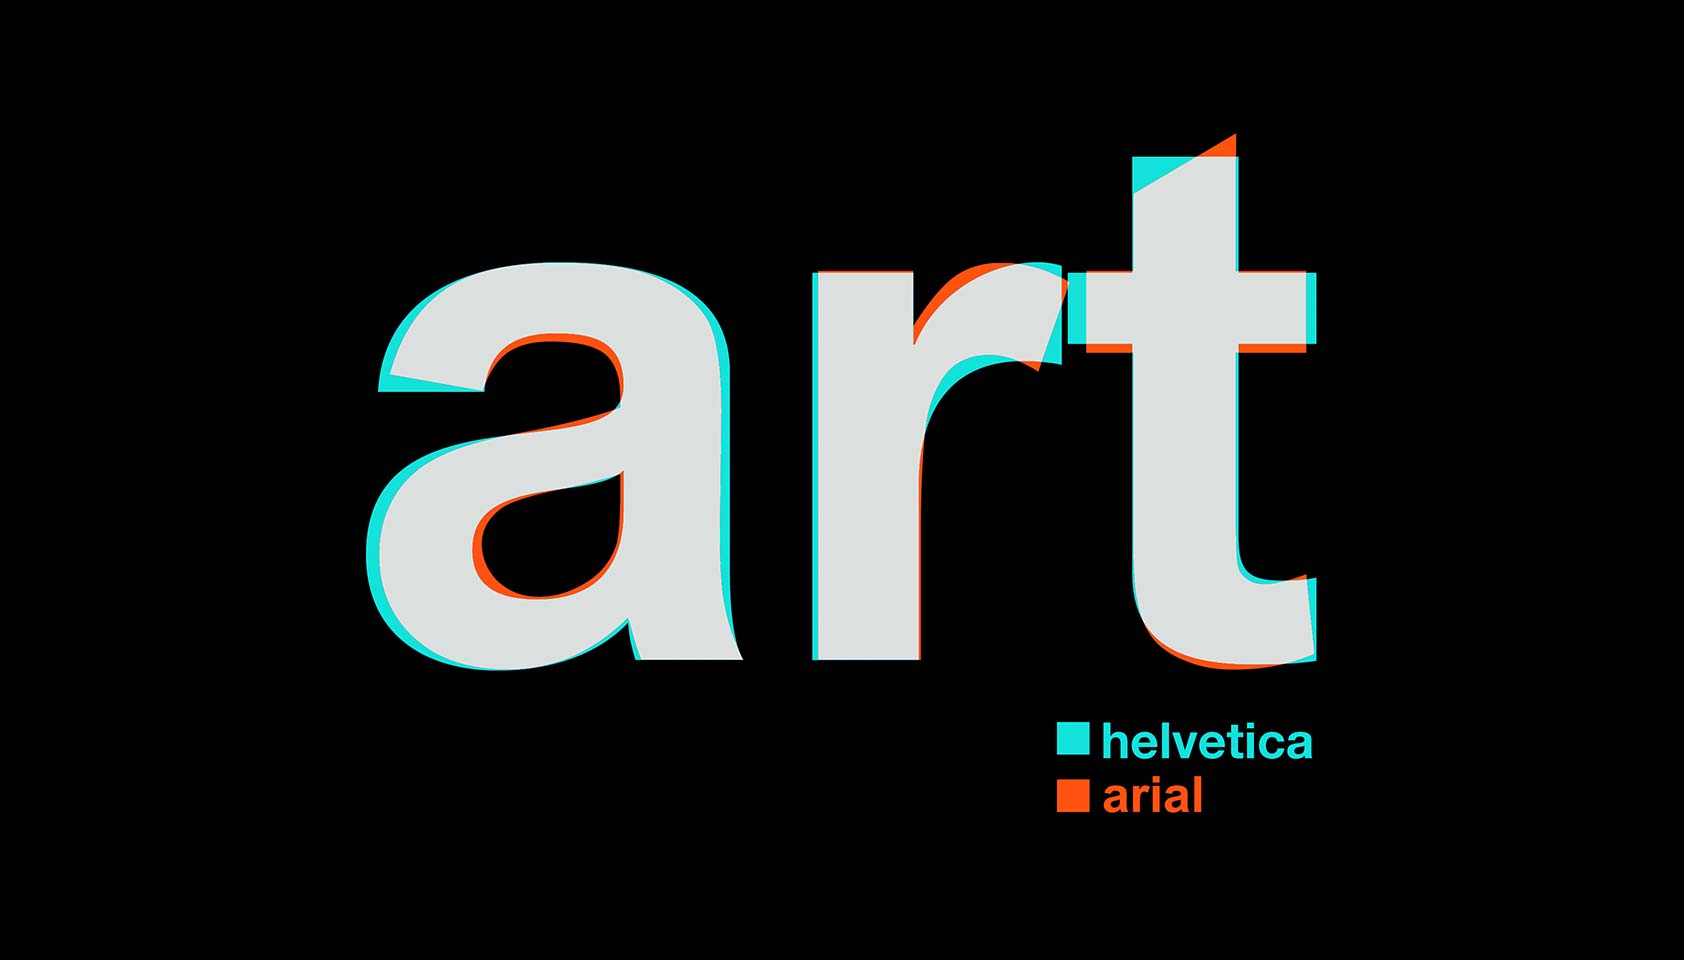 how to get helvetica font